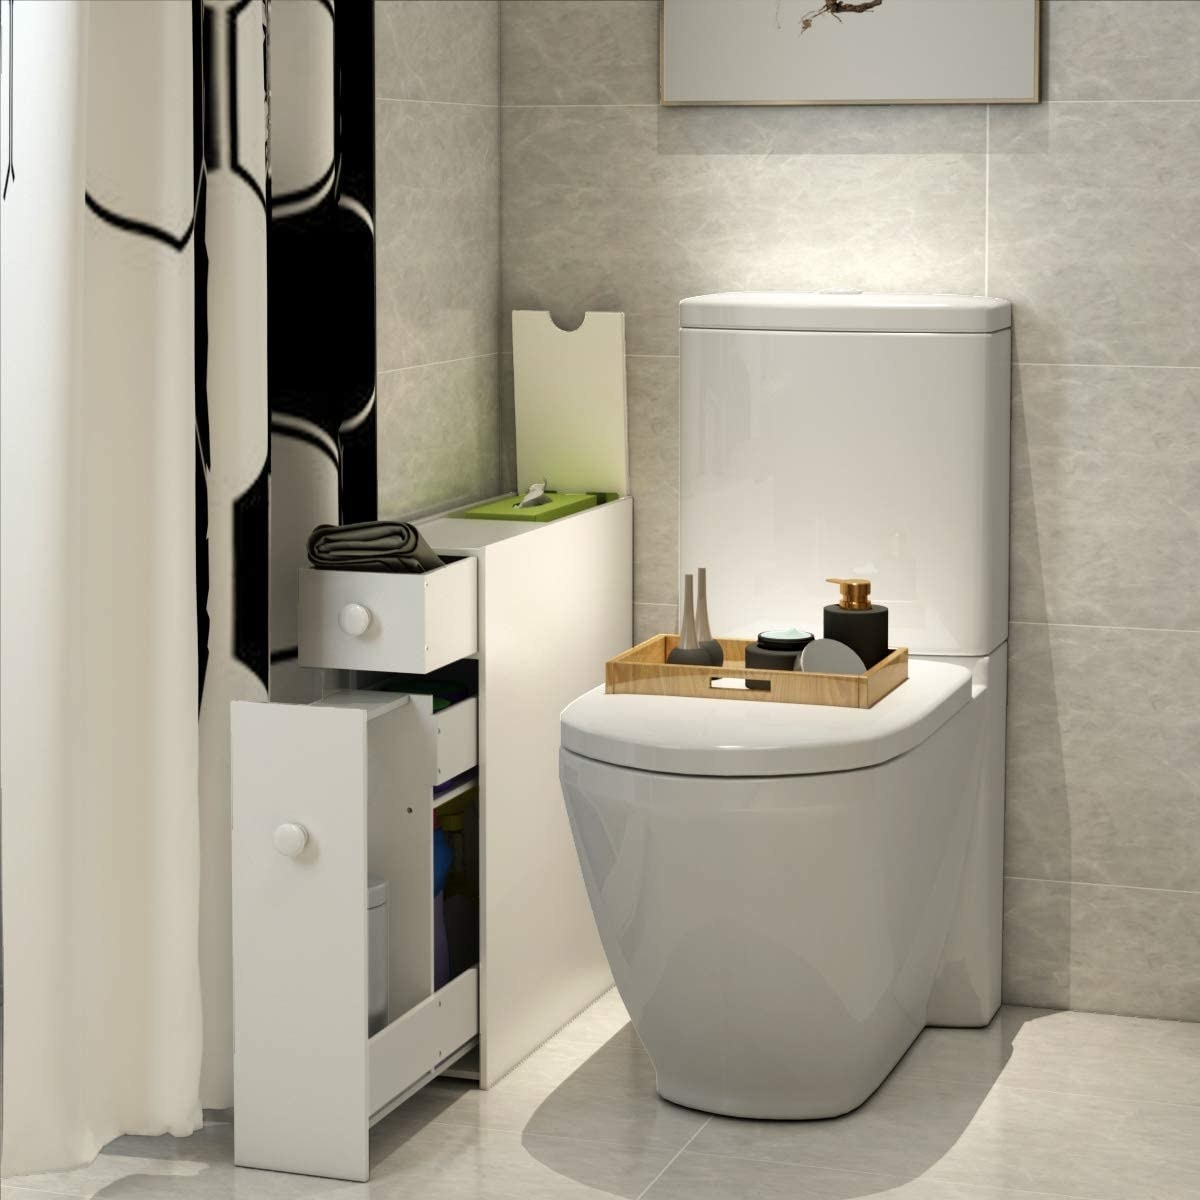 the slim cabinet beside a clean toilet